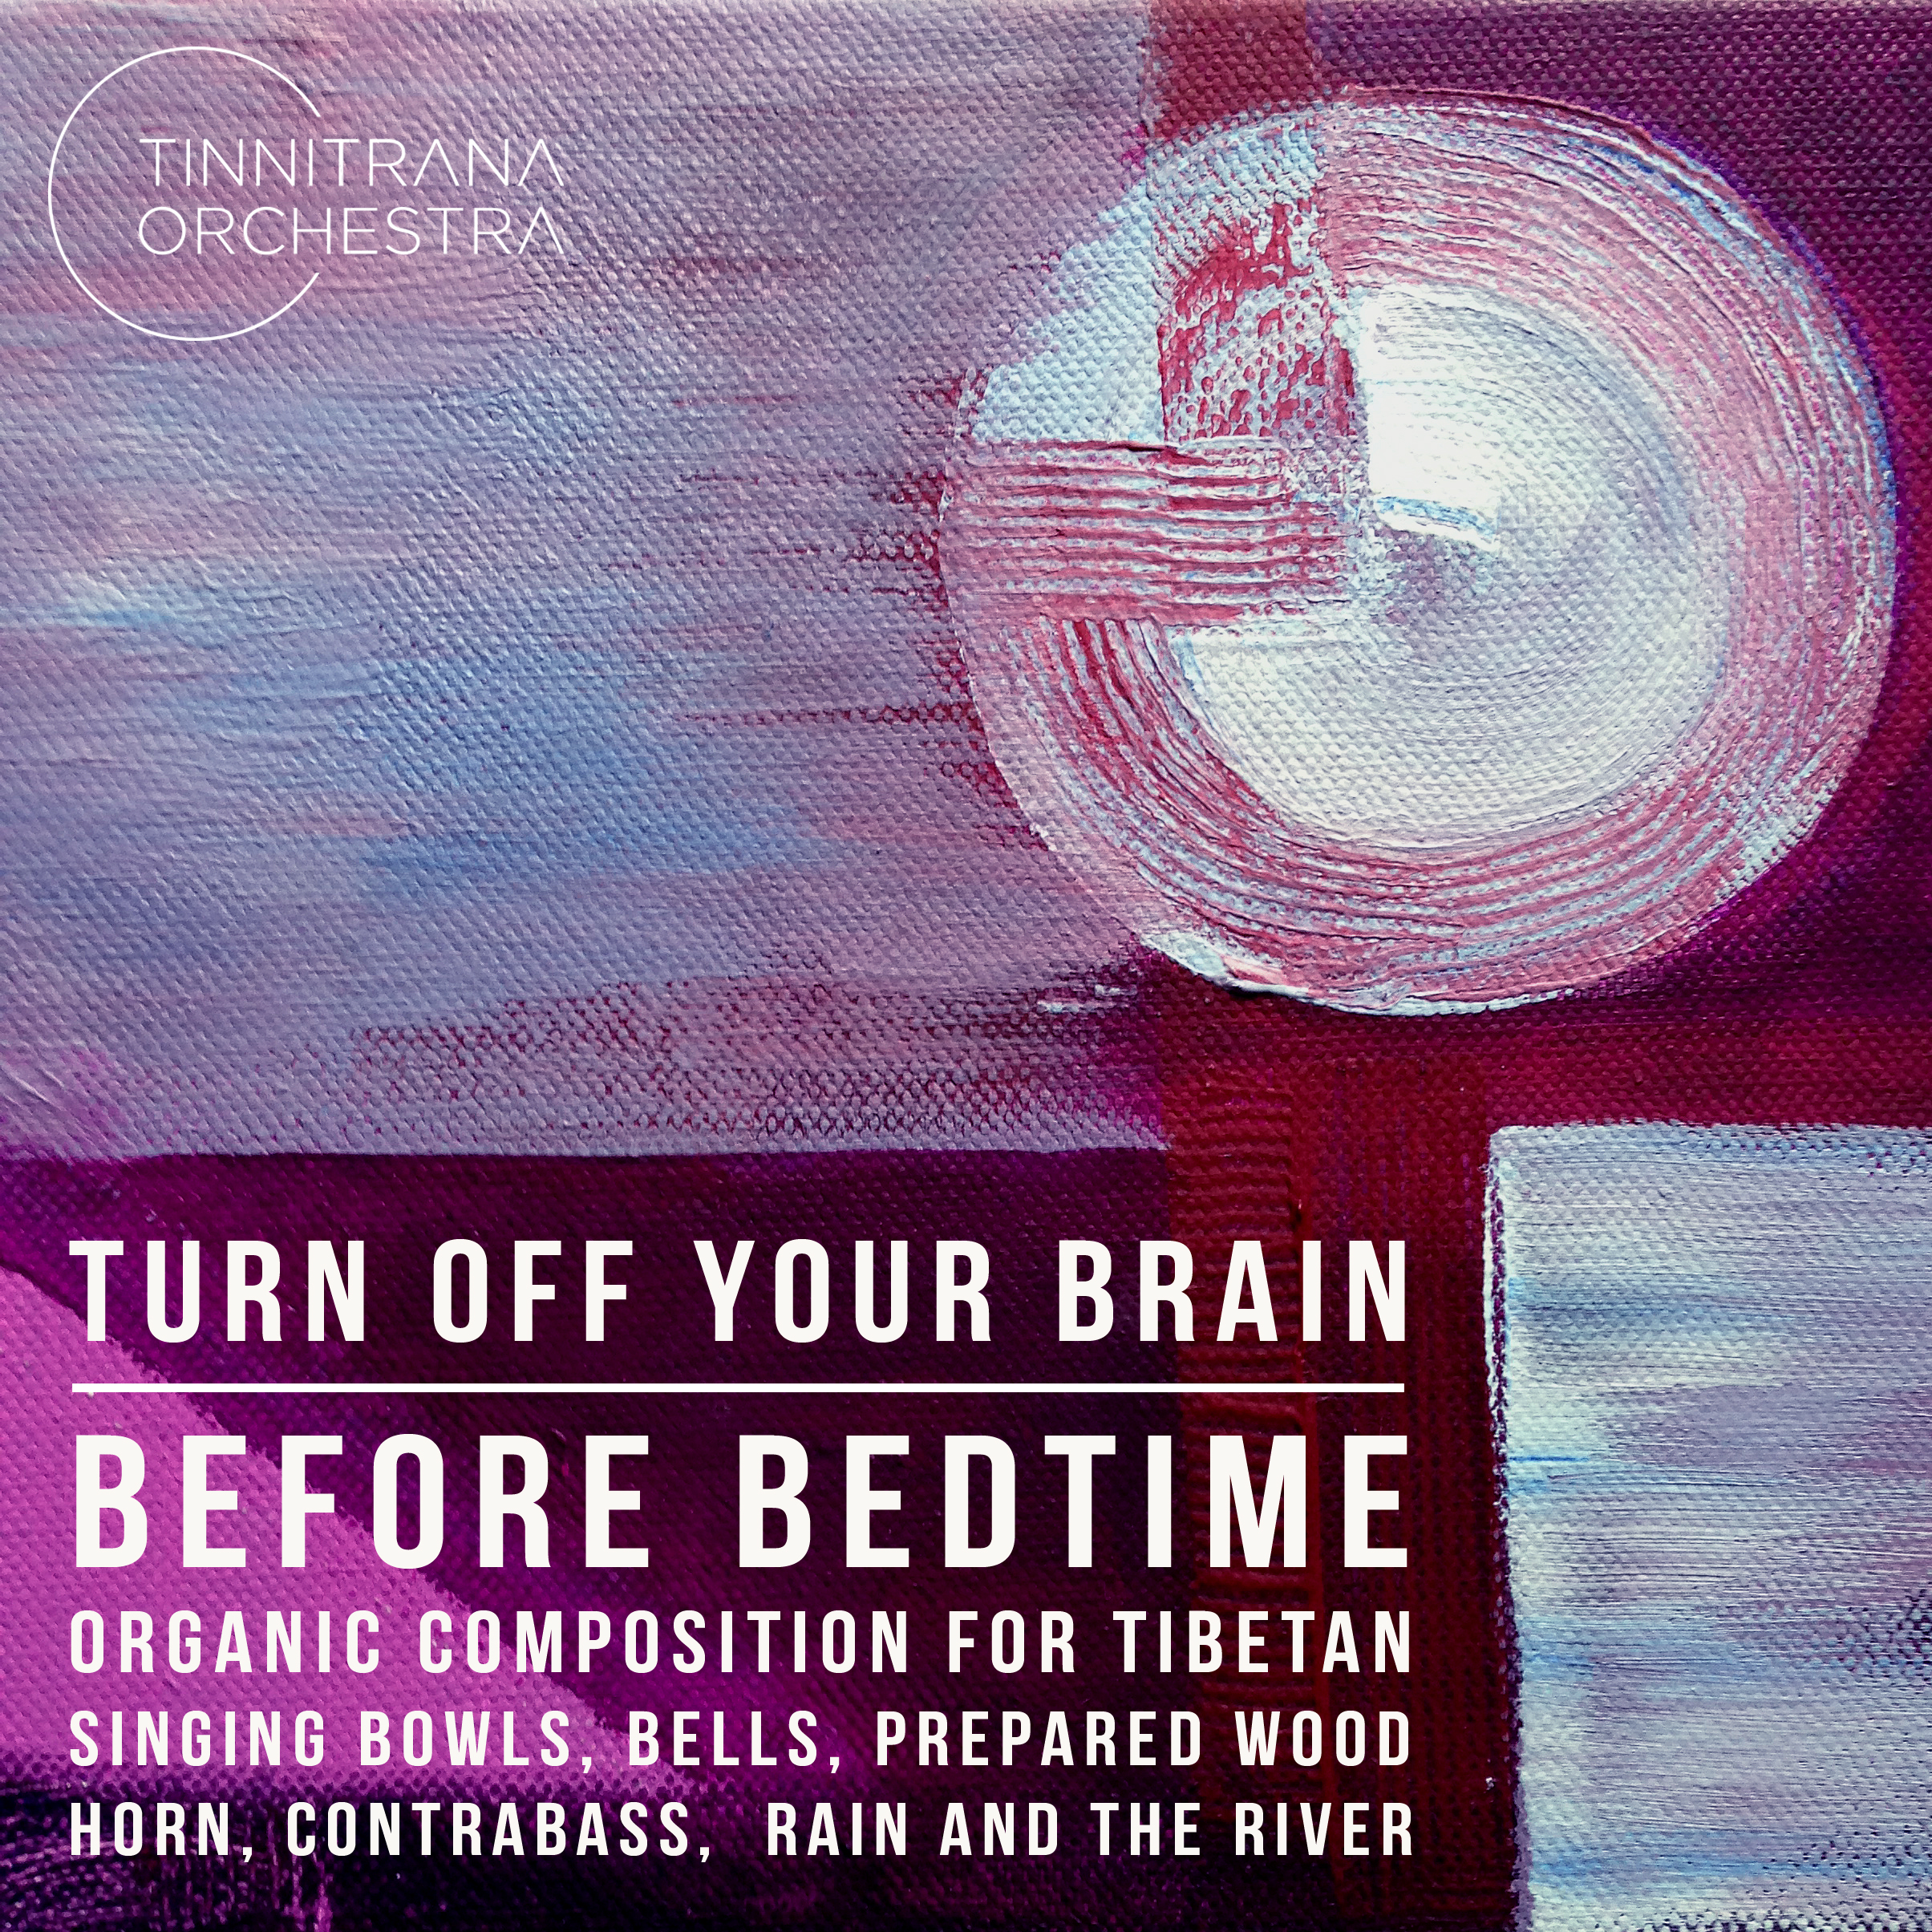 Tinnitrana_Orchestra_Turn_Off_Your_Brain